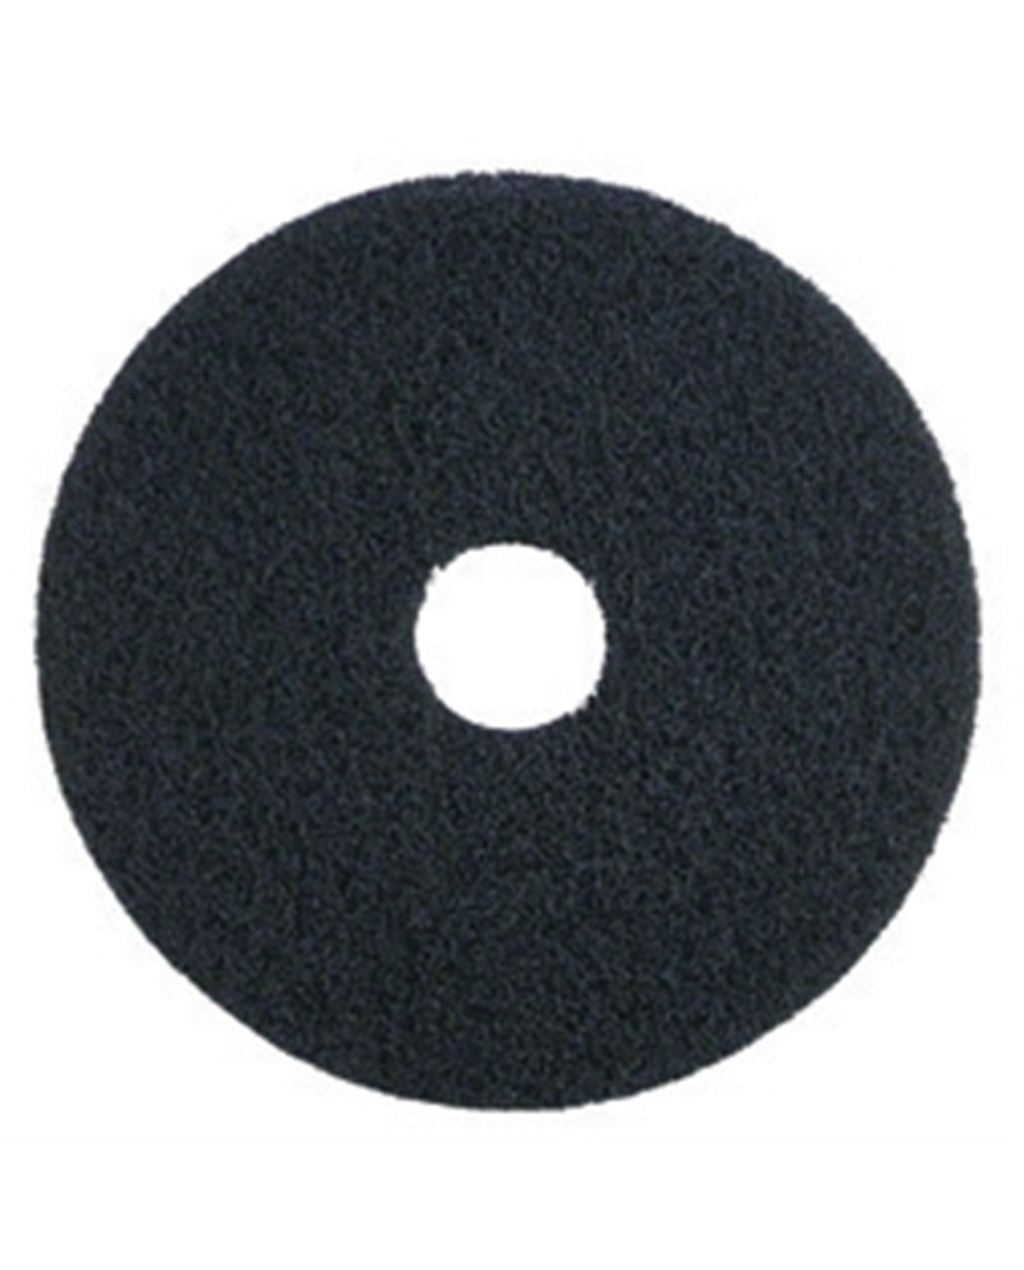 17 Black Stripping Pads (Pack of 5)